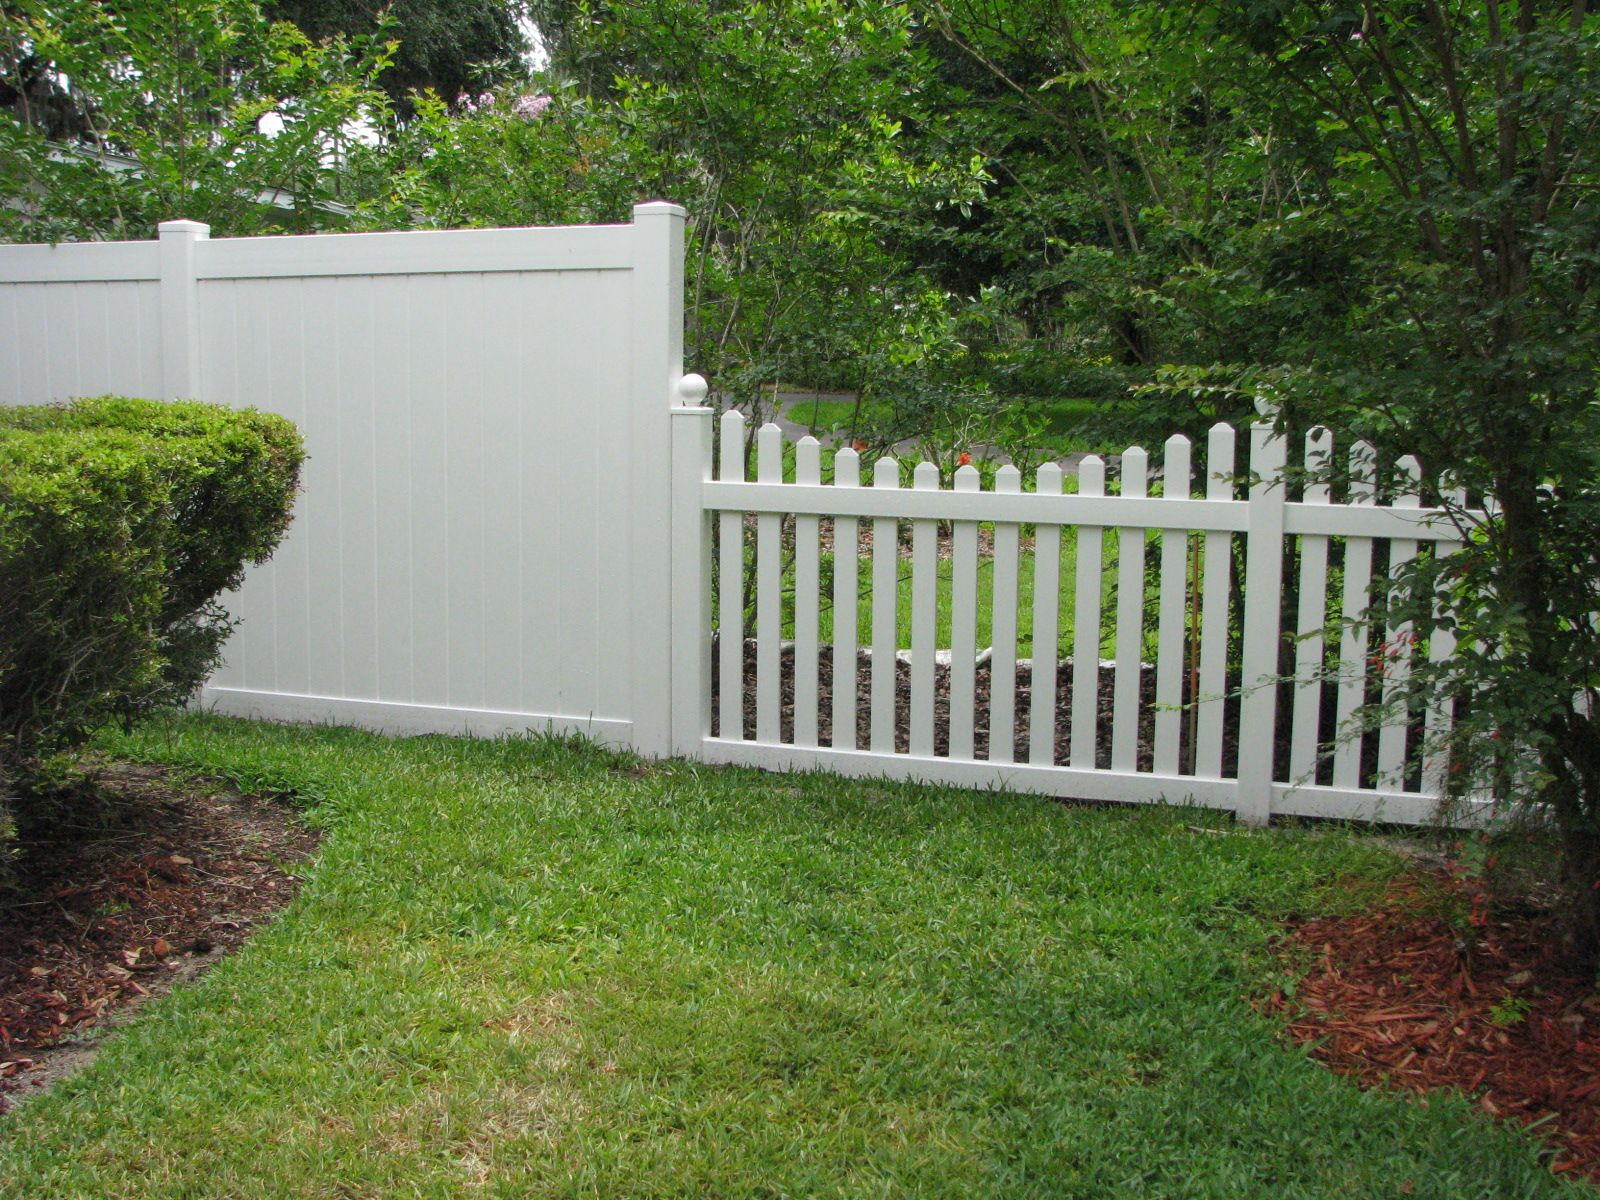 Custom Vinyl Privacy And Picket Fence Design By Mossy Oak Fence Company Orlando Melbourne Fl Fence Design Vinyl Privacy Fence Picket Fence